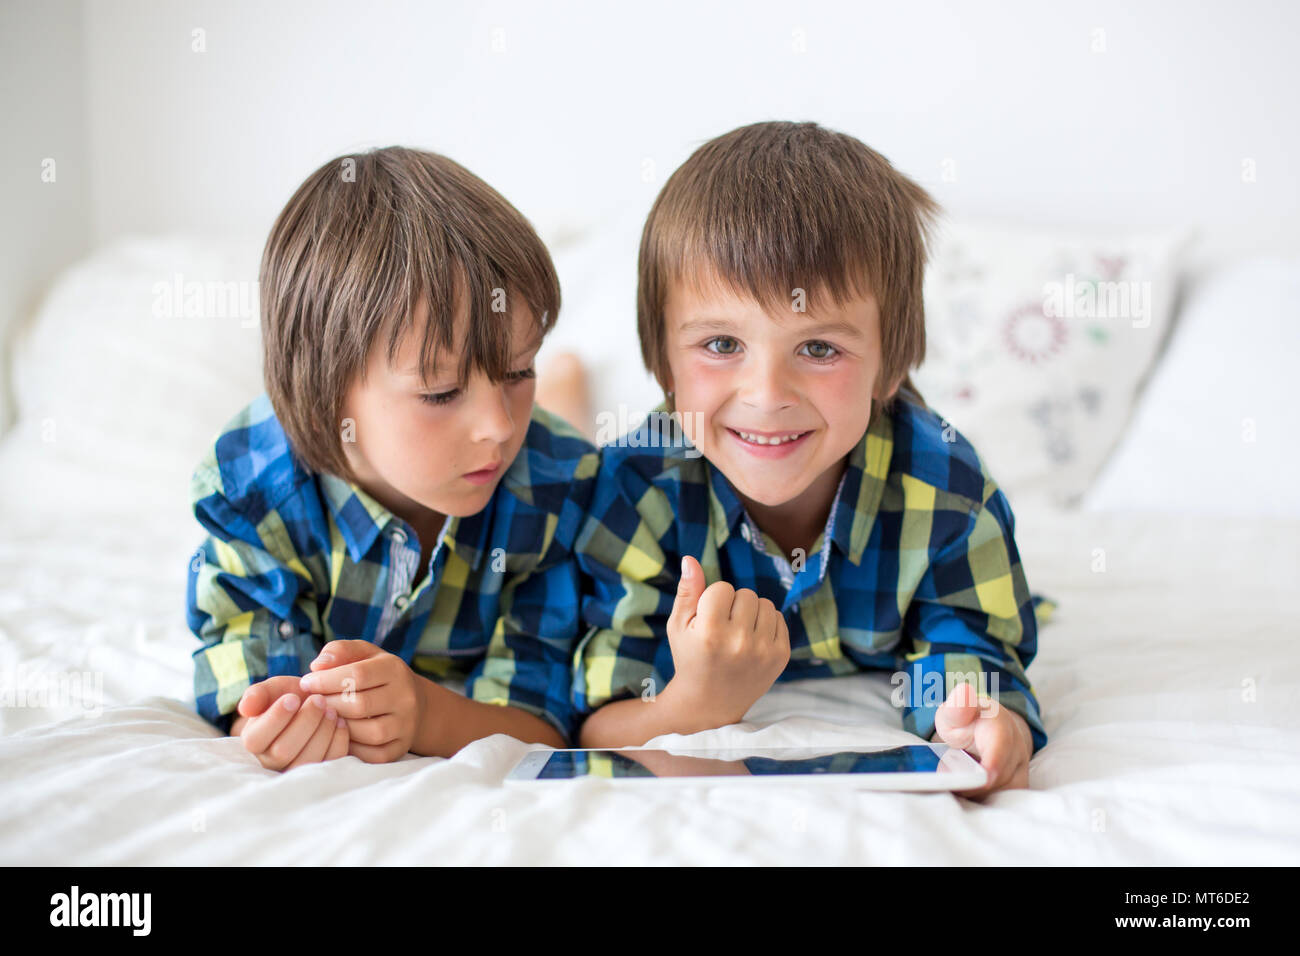 Two preschool children, boy brothers, playing at home in bed on tablet - Stock Image